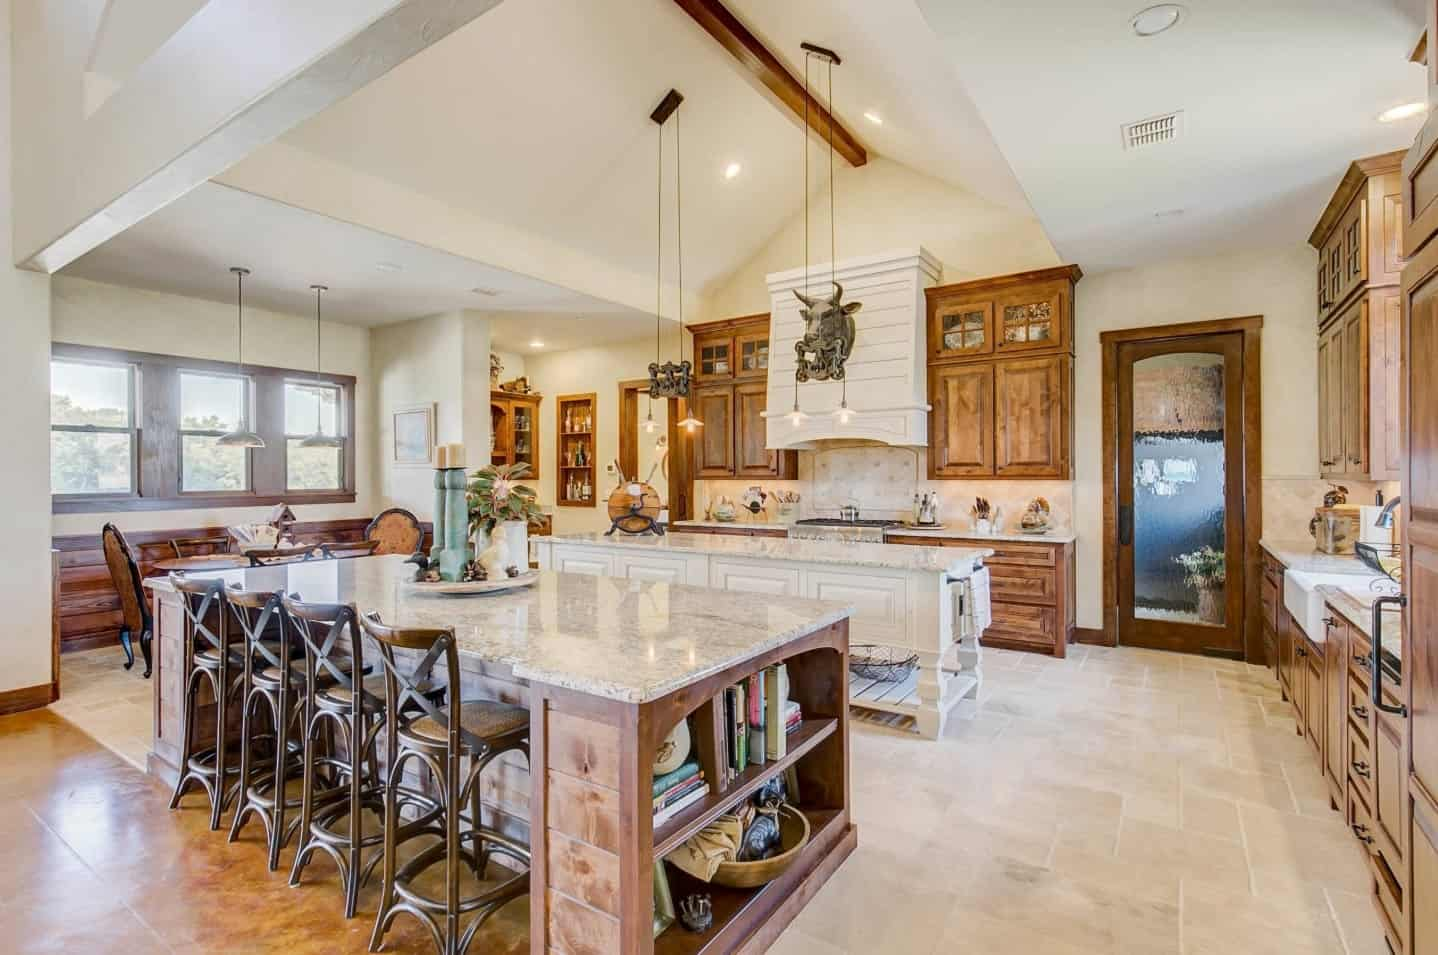 Luxurious kitchen boasts a double breakfast island and a shiplap vent hood mounted with a bull head decor.